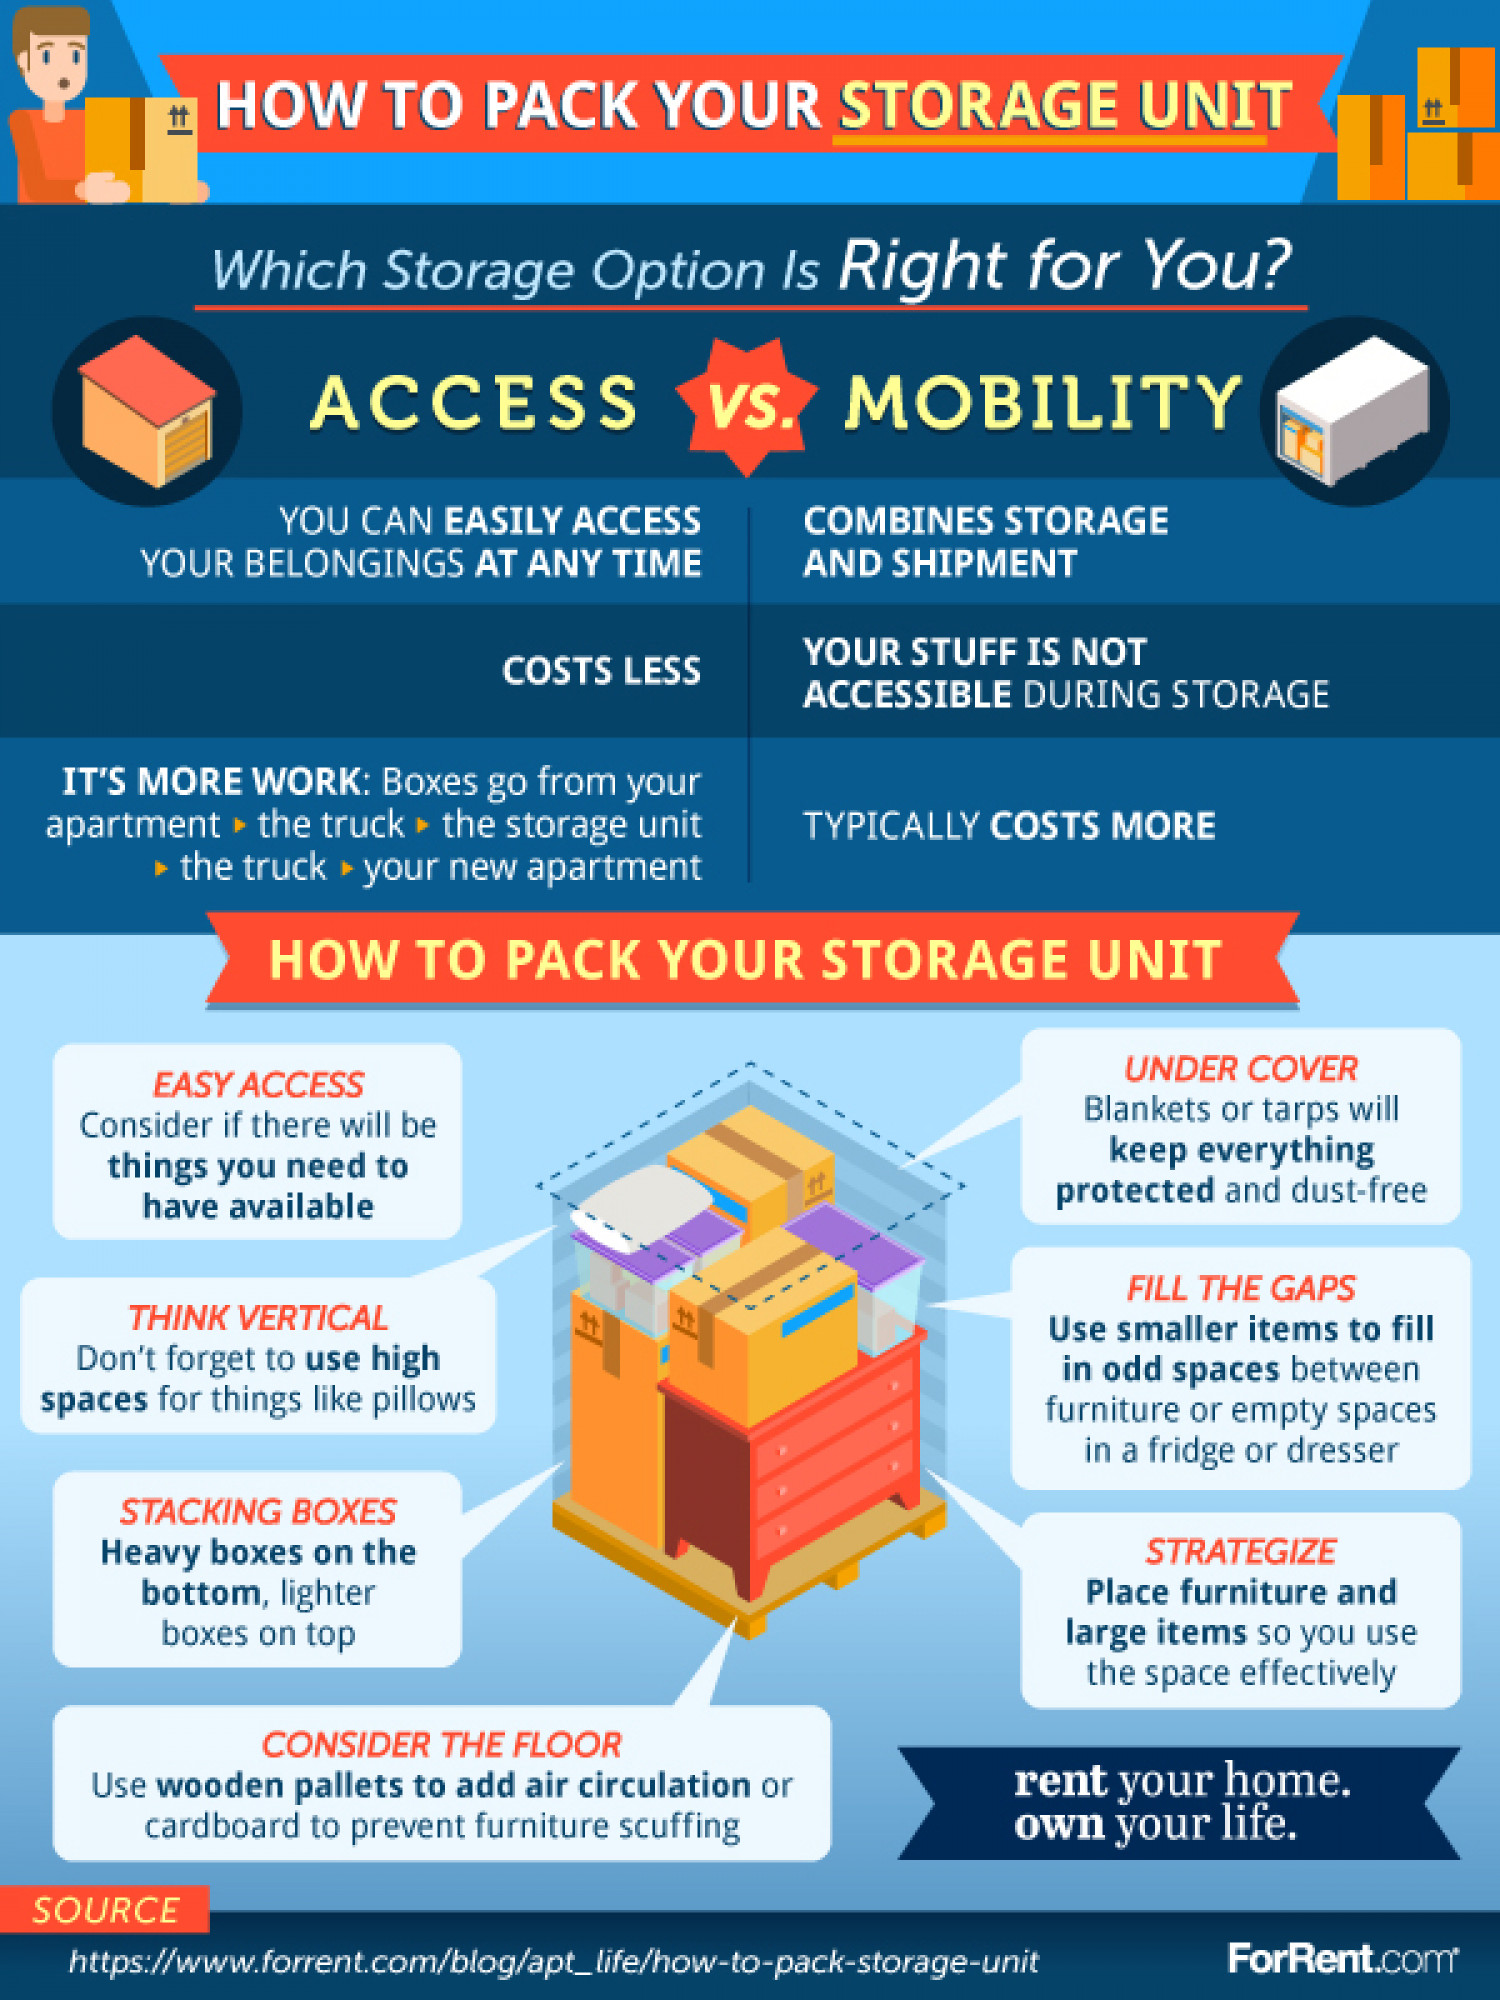 Everything You Need to Know About Packing a Storage Space Infographic